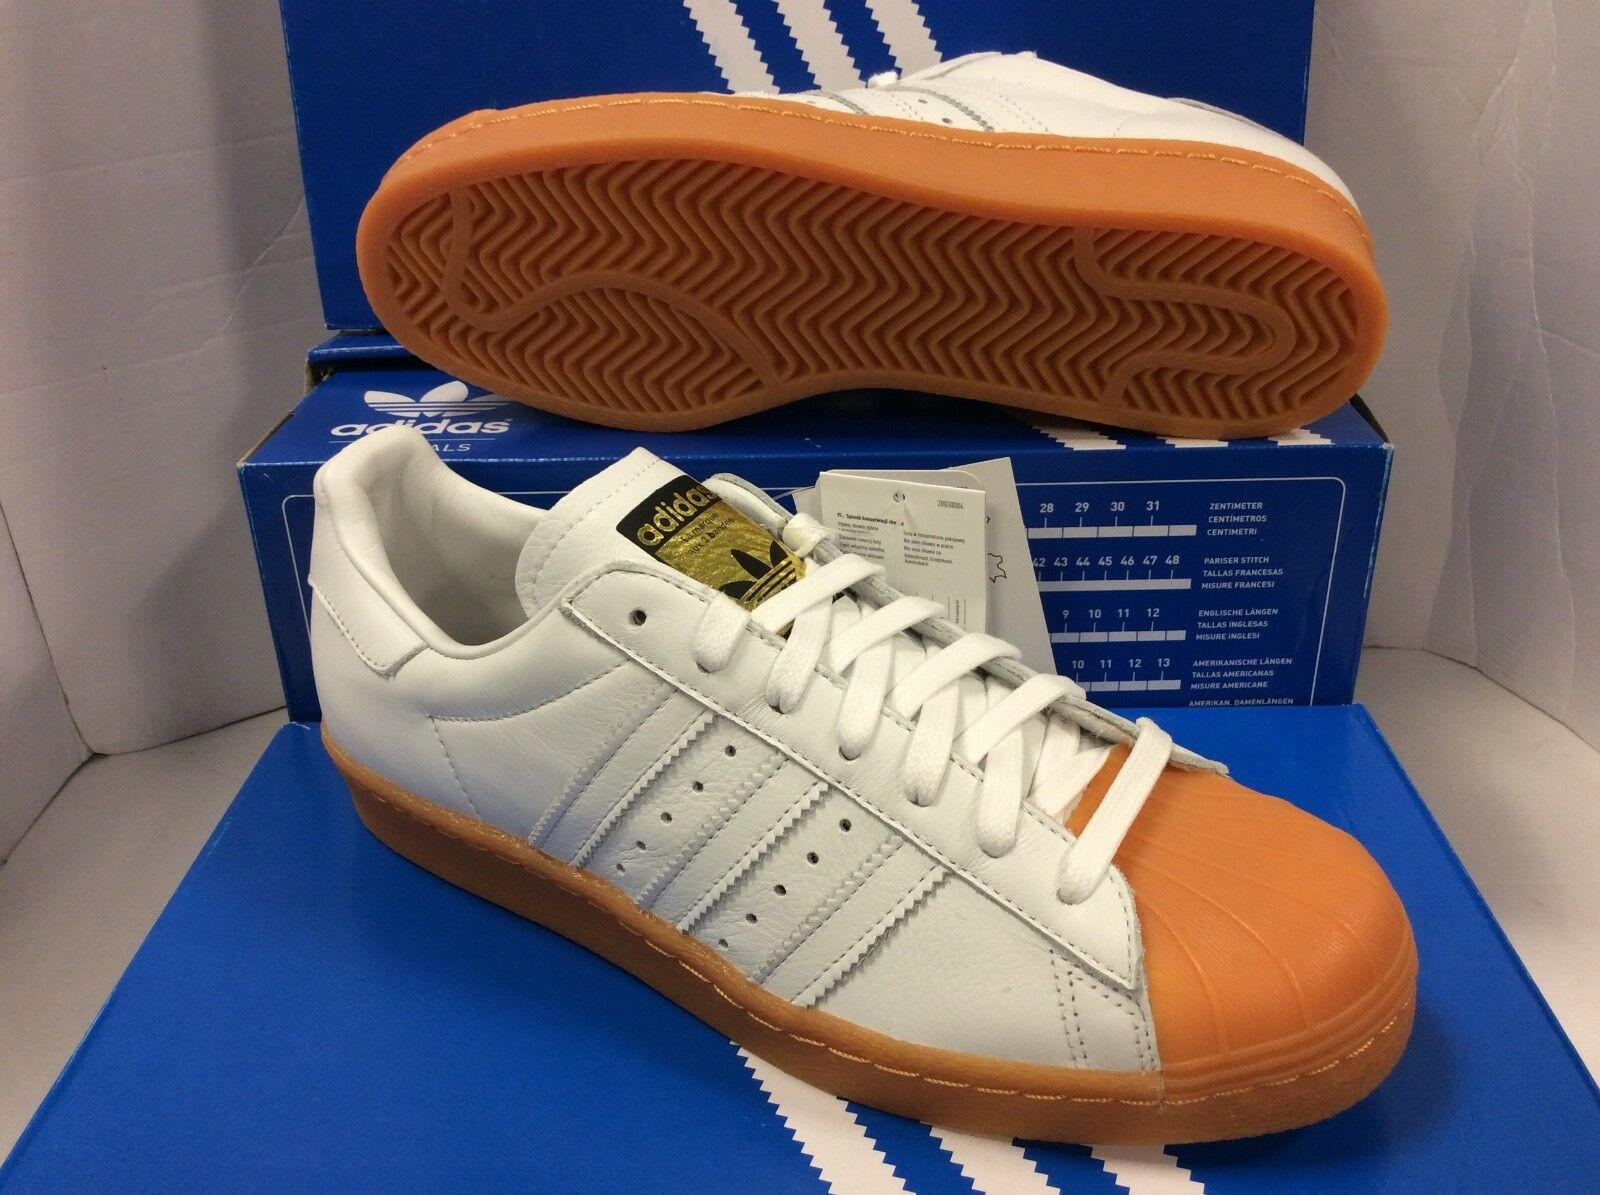 BDIDBS Originals Superstar 80s DLX S75830 Men's Trainers, Size UK 6.5 / EUR 40